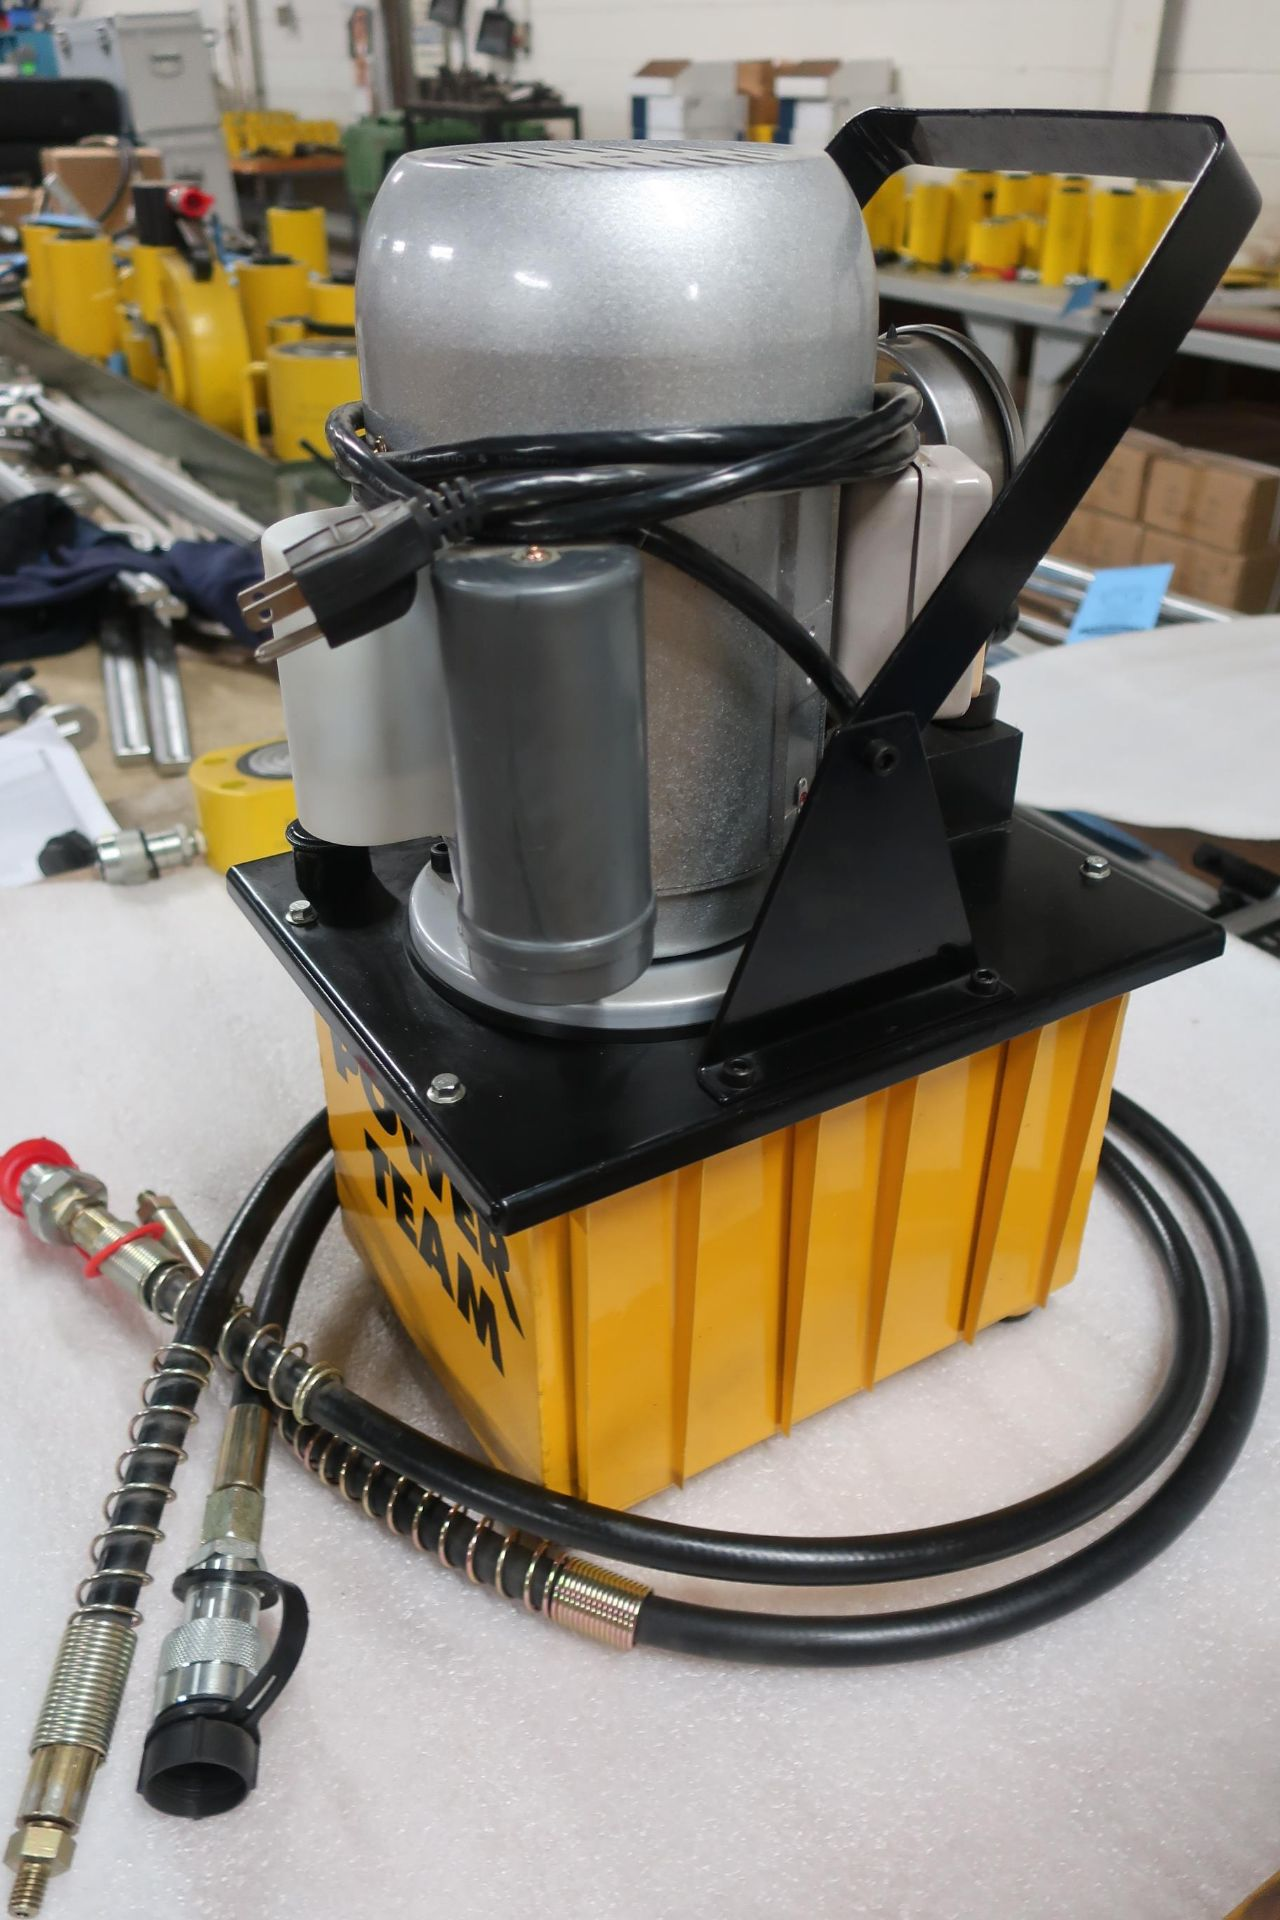 Power Team Hydraulics Electric Powerpack type - 120V single phase hydraulic pump - UNUSED & MINT